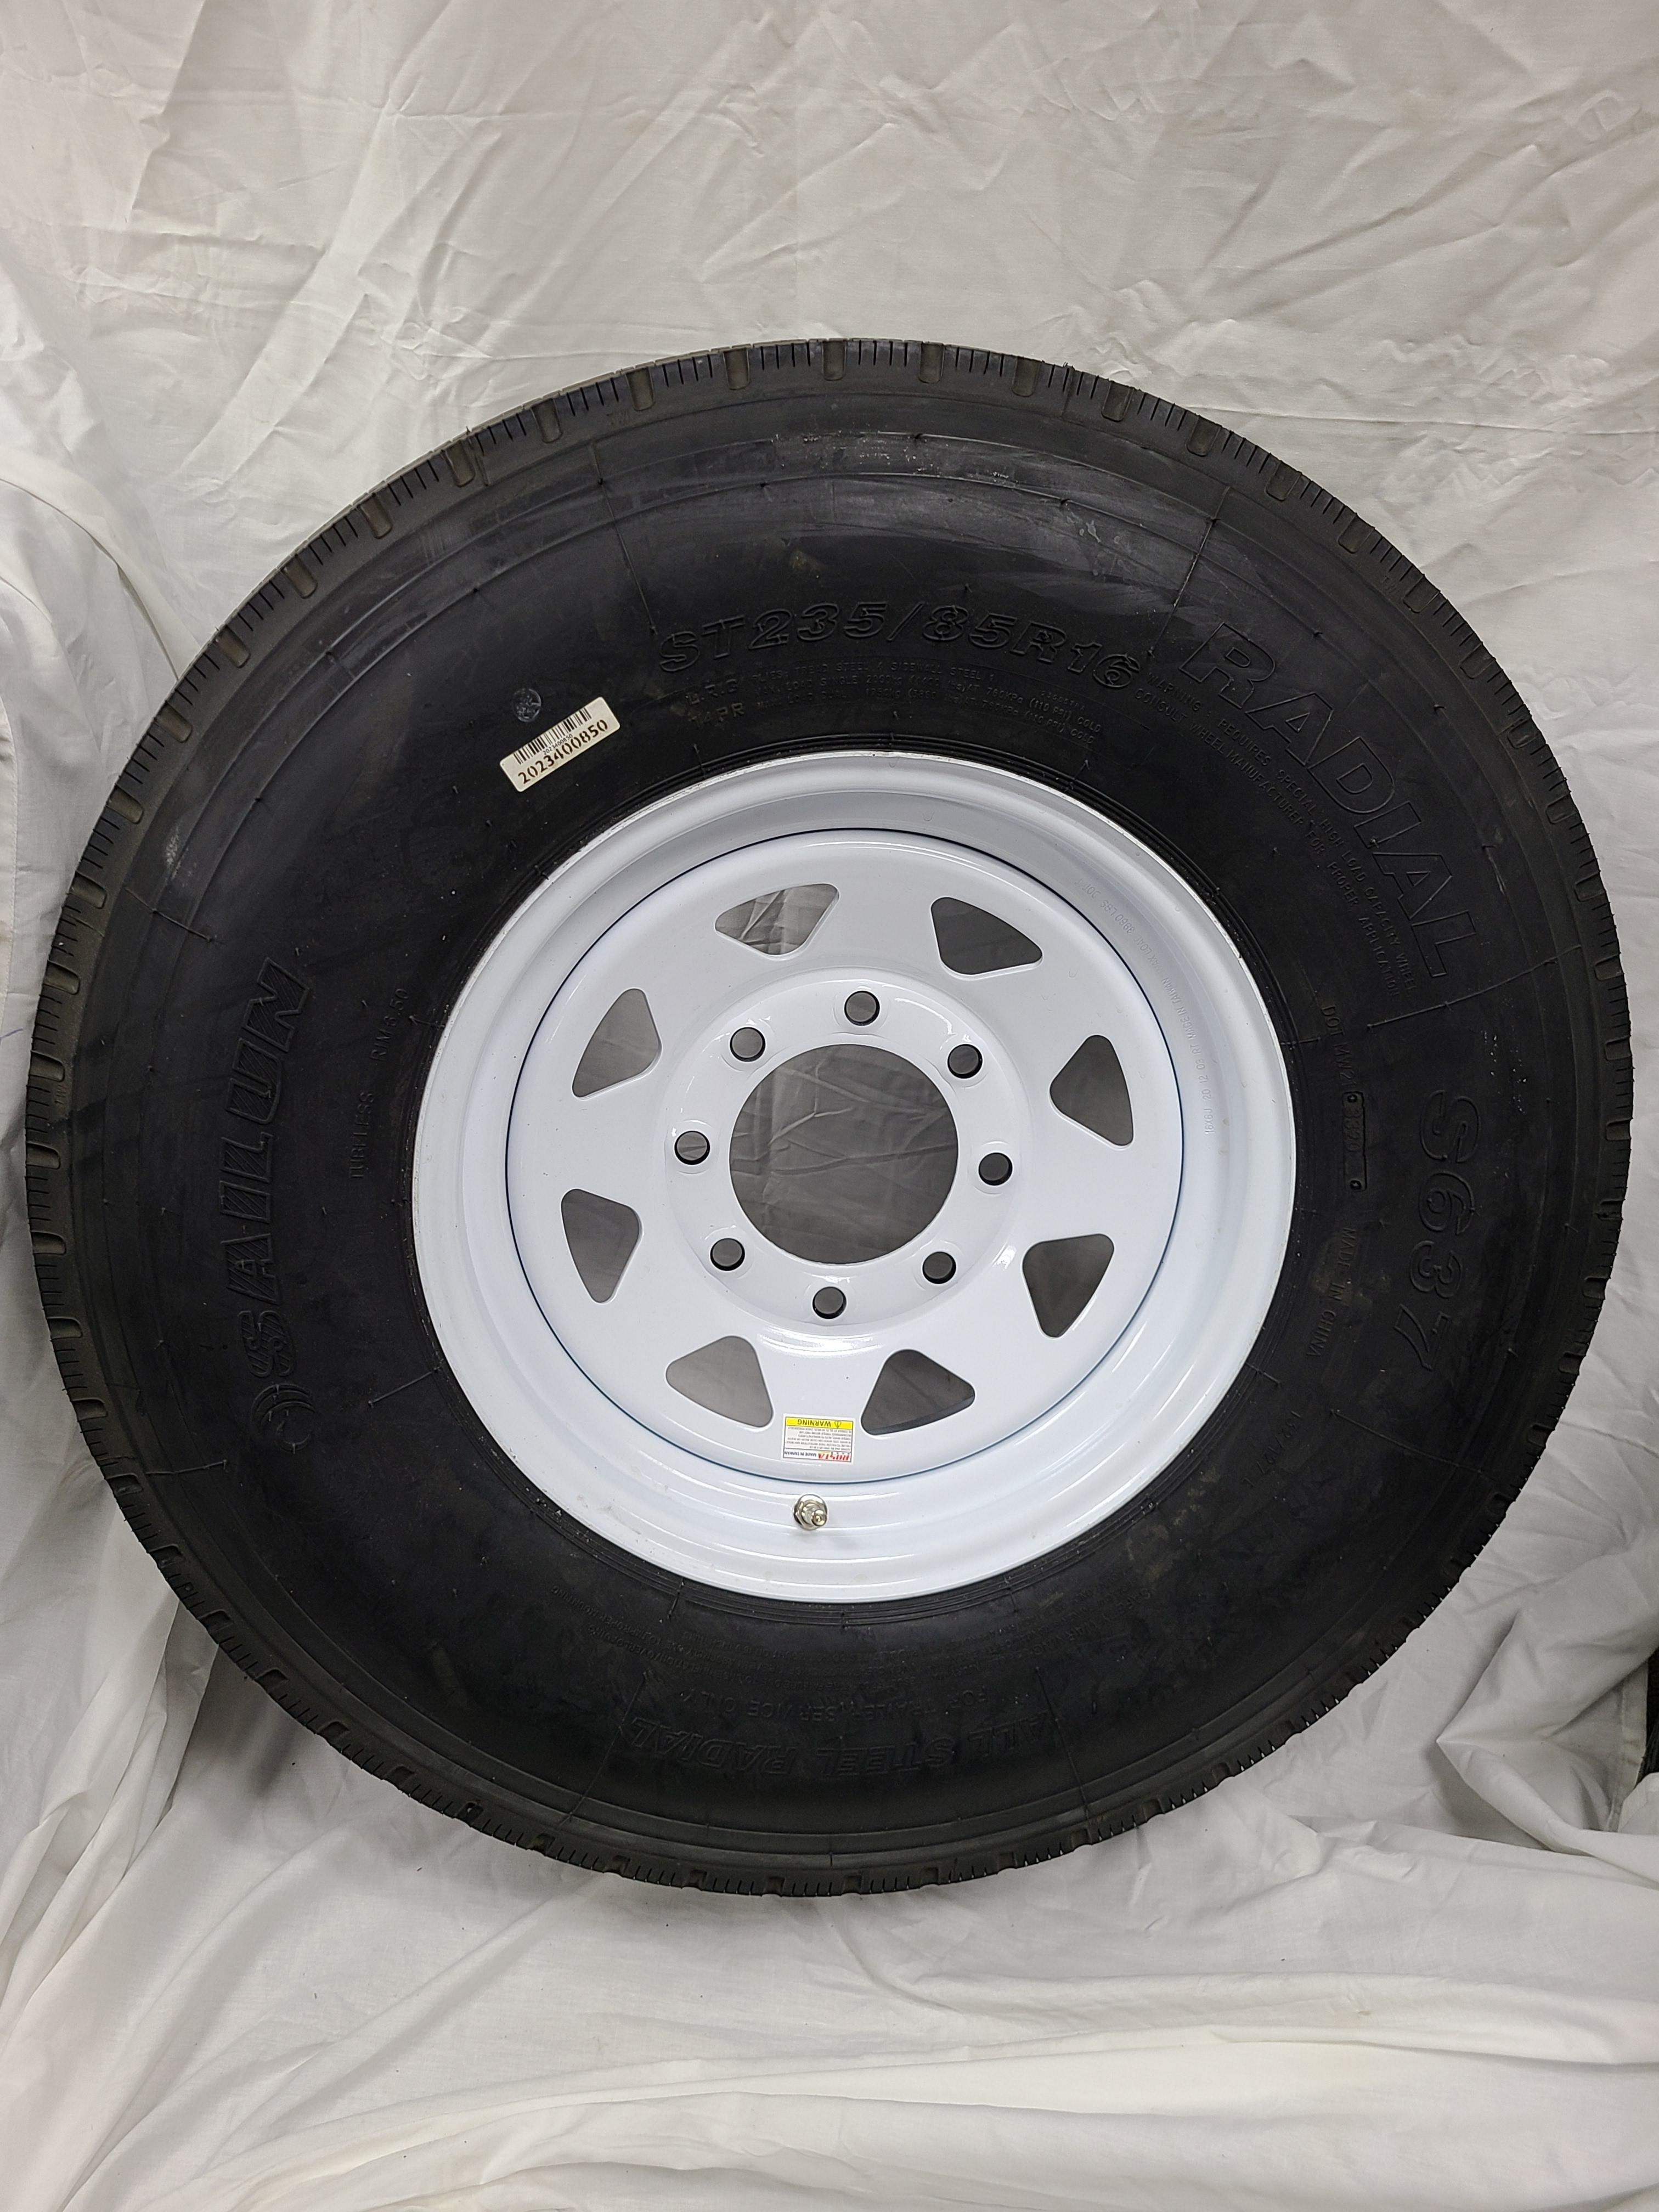 ST235/85/R16 Trailer Tire Load Range G 8 Hole White Spoke